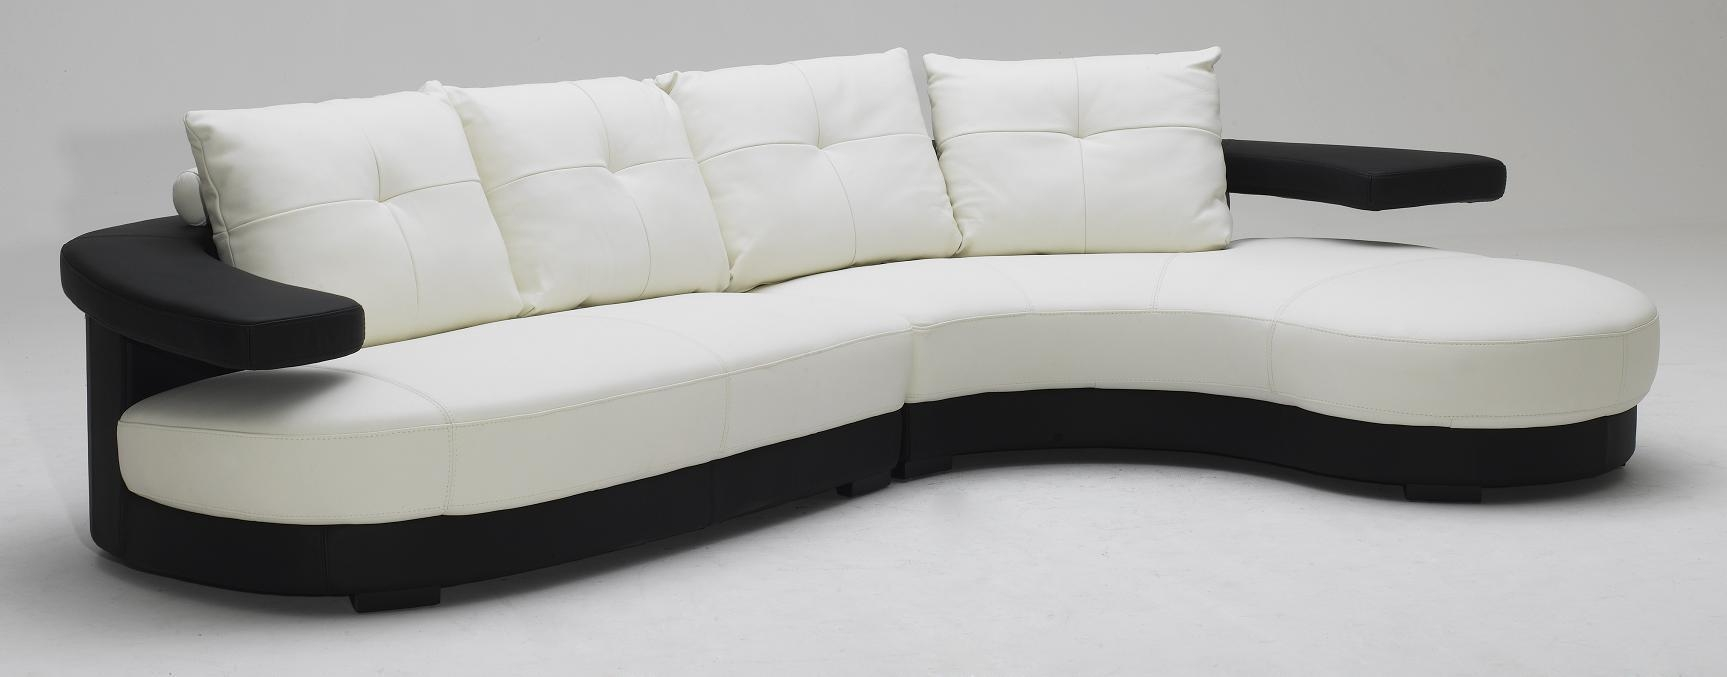 Modern Sofas Sofa Los Angeles For Small Spaces | Deseosol Within Modern Sofas (Image 19 of 20)